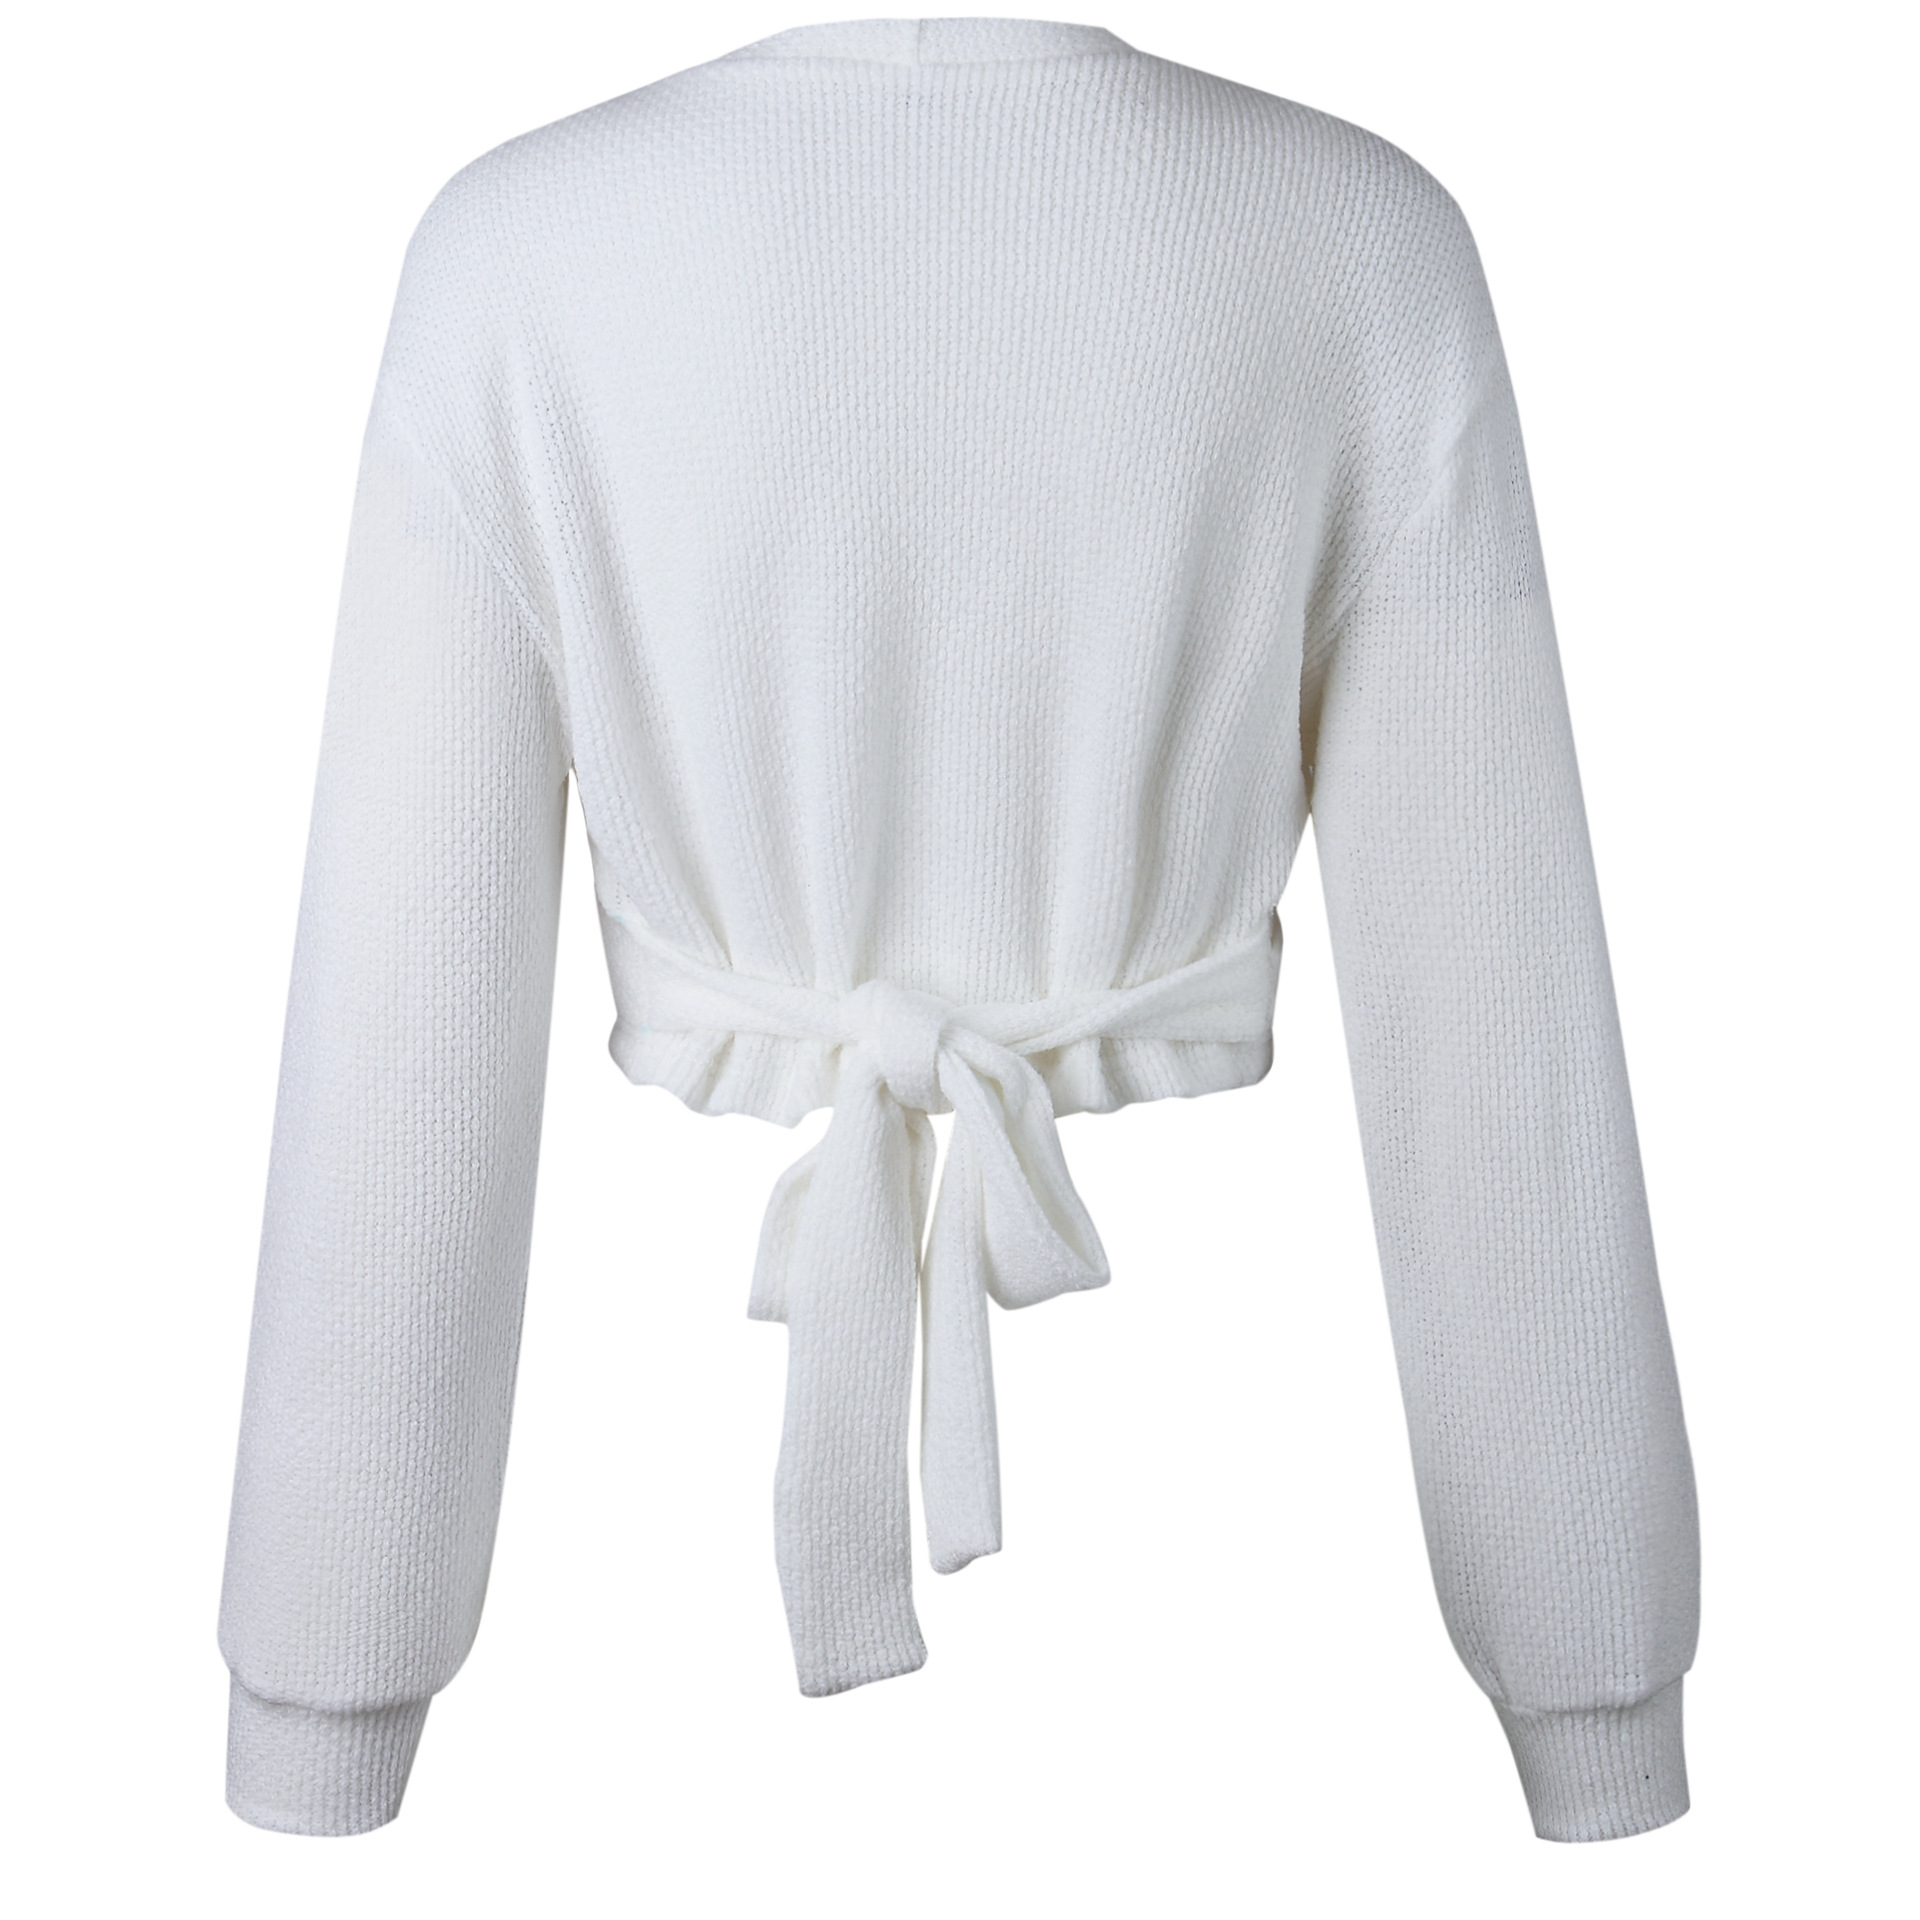 Autumn And Winter Sweaters tops Loose Slim Sweater pullover 19 Casual solid Fashion White Long Sleeve V-neck Women Clothing 2